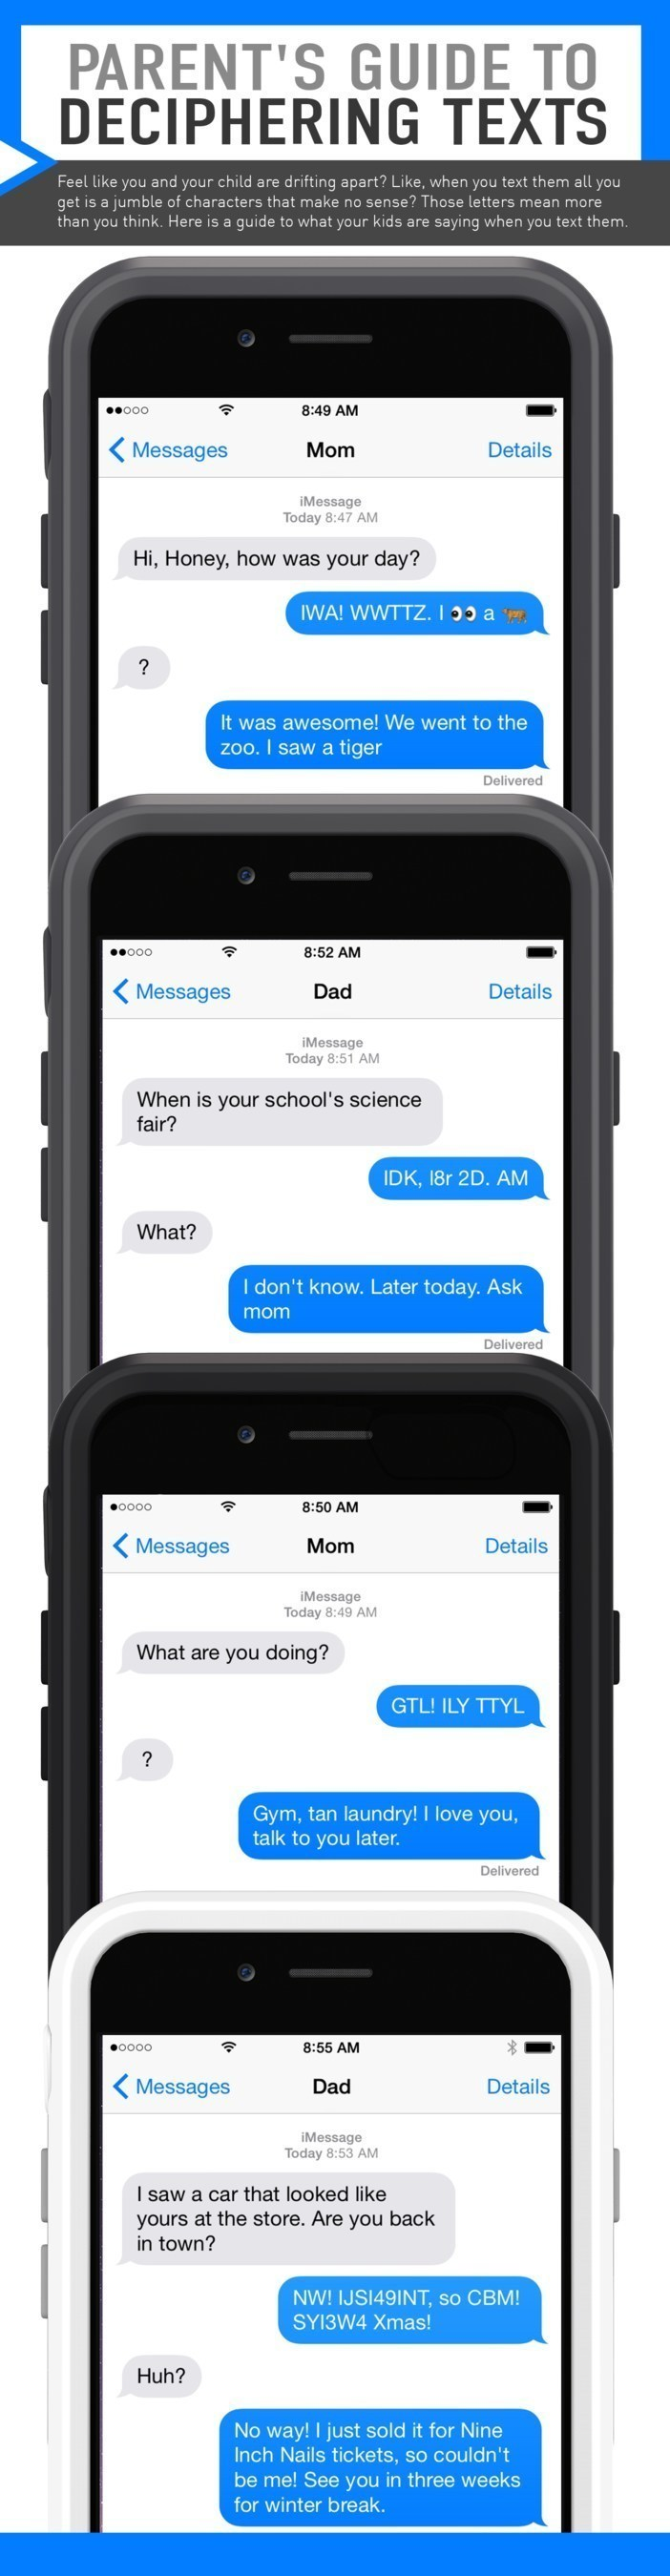 Parents can learn what their students are texting them with this helpful infographic from OtterBox.